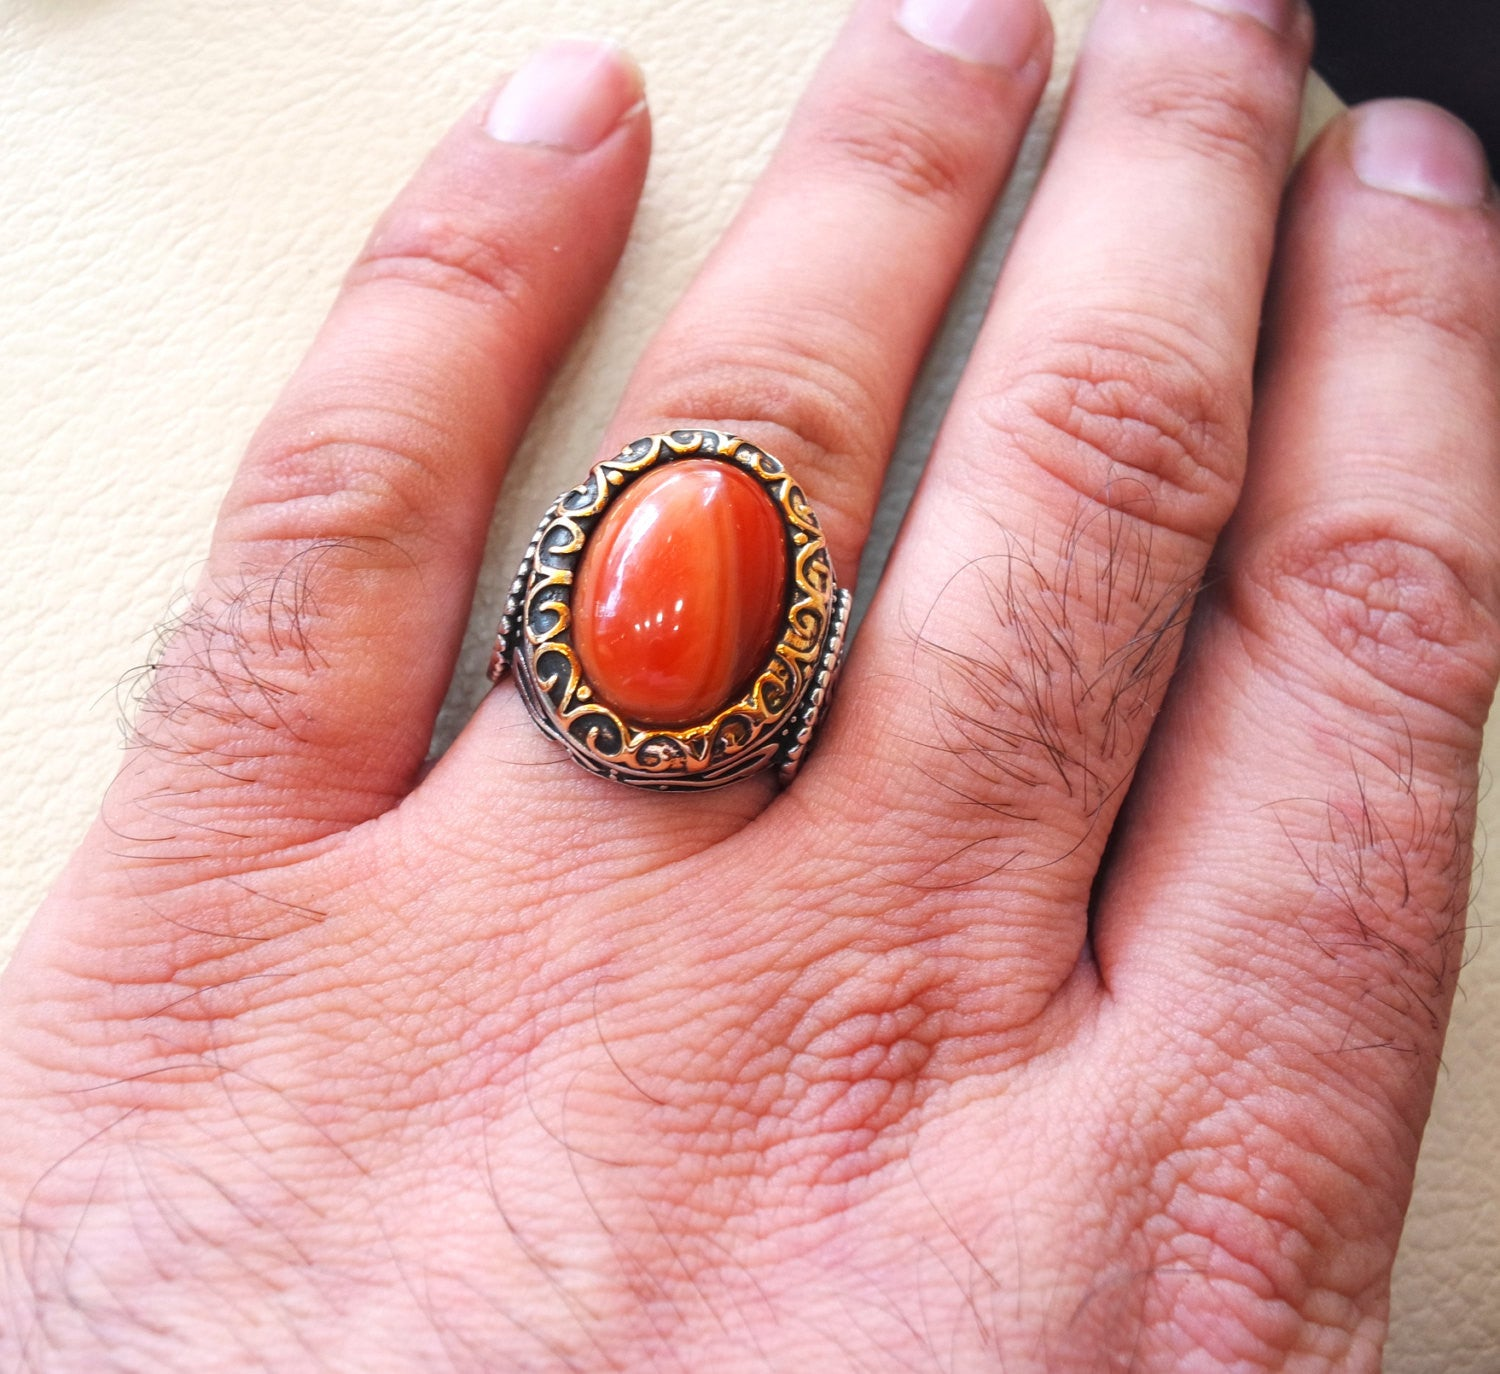 striped agate aqeeq ring sterling silver 925 ring any size antique middle eastern style carnelian semi precious natural cabochon عقيق